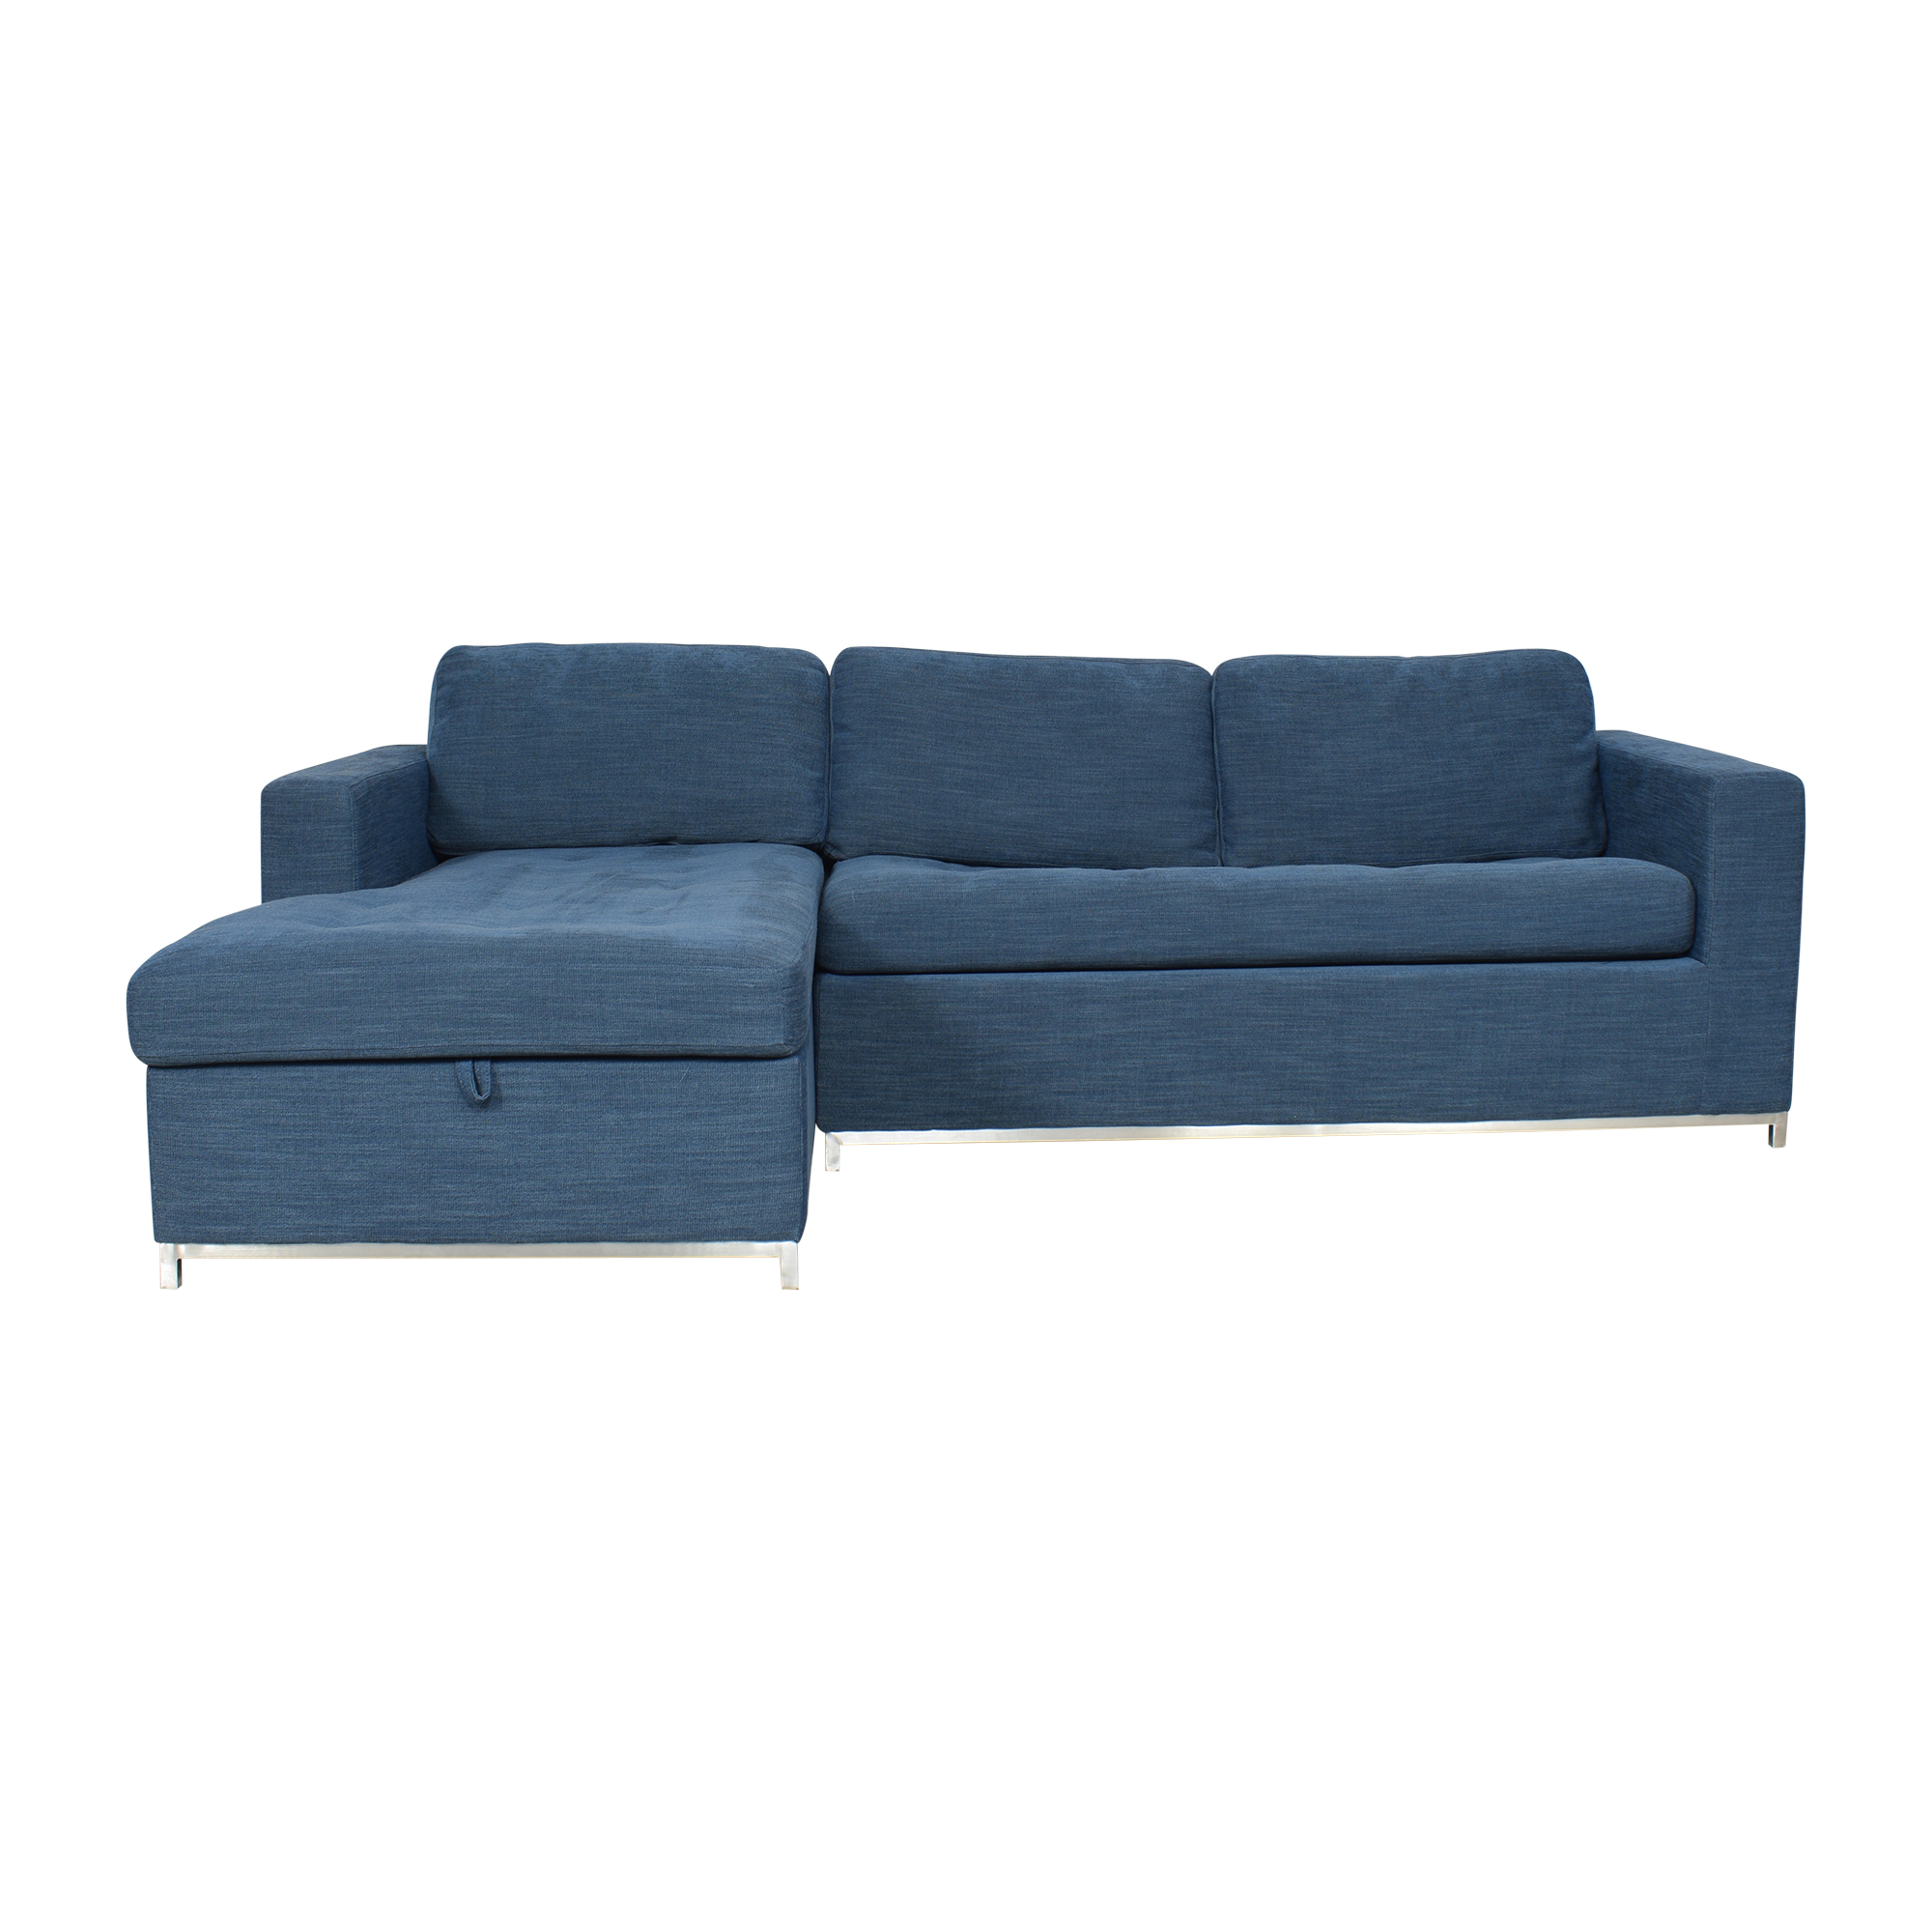 Article Article Soma Sectional Sleeper Sofa ct